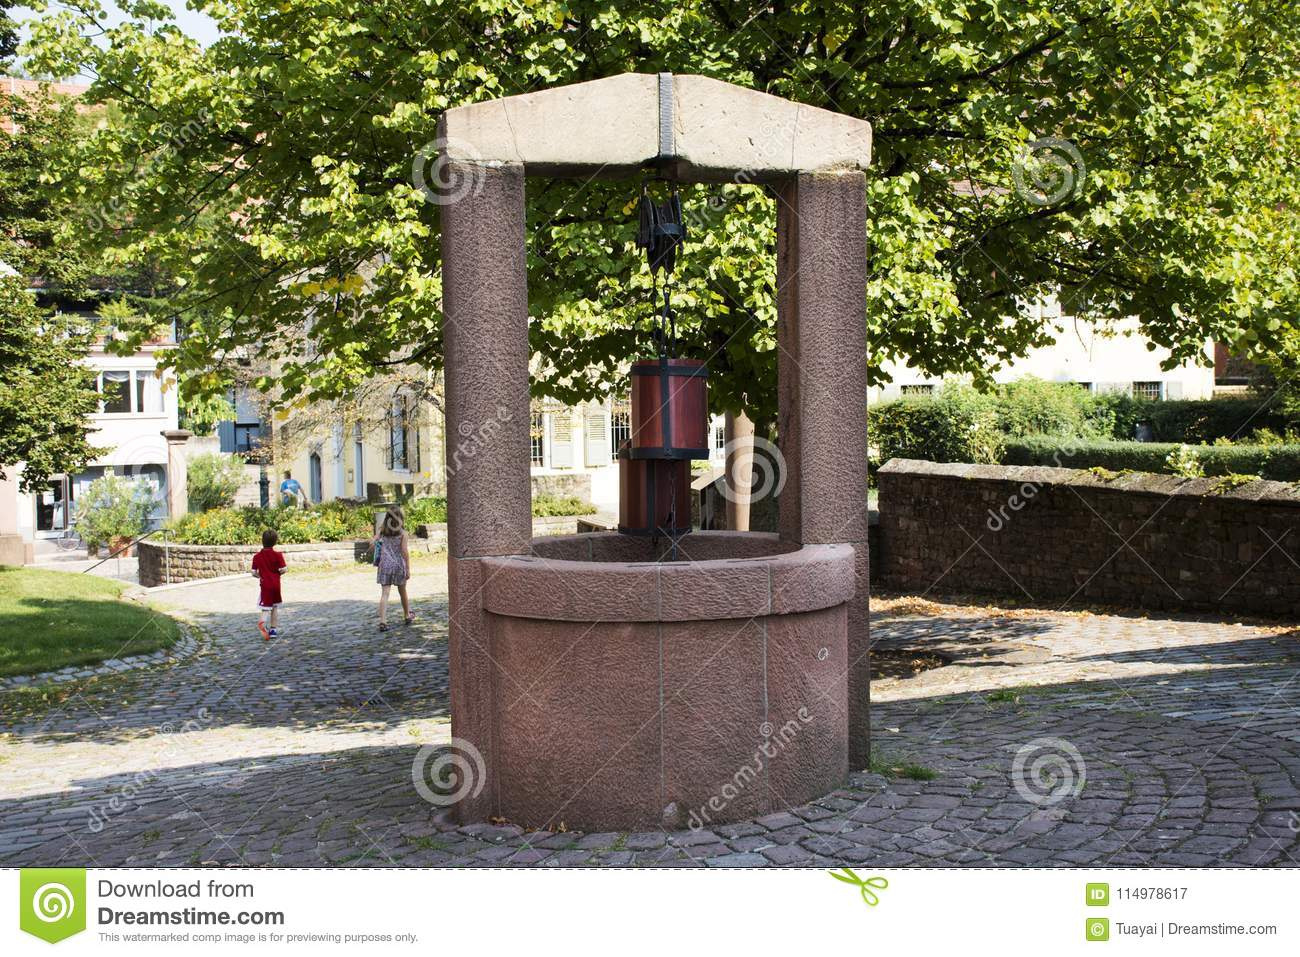 Classic dug water well at garden outdoor at Ladenburg town